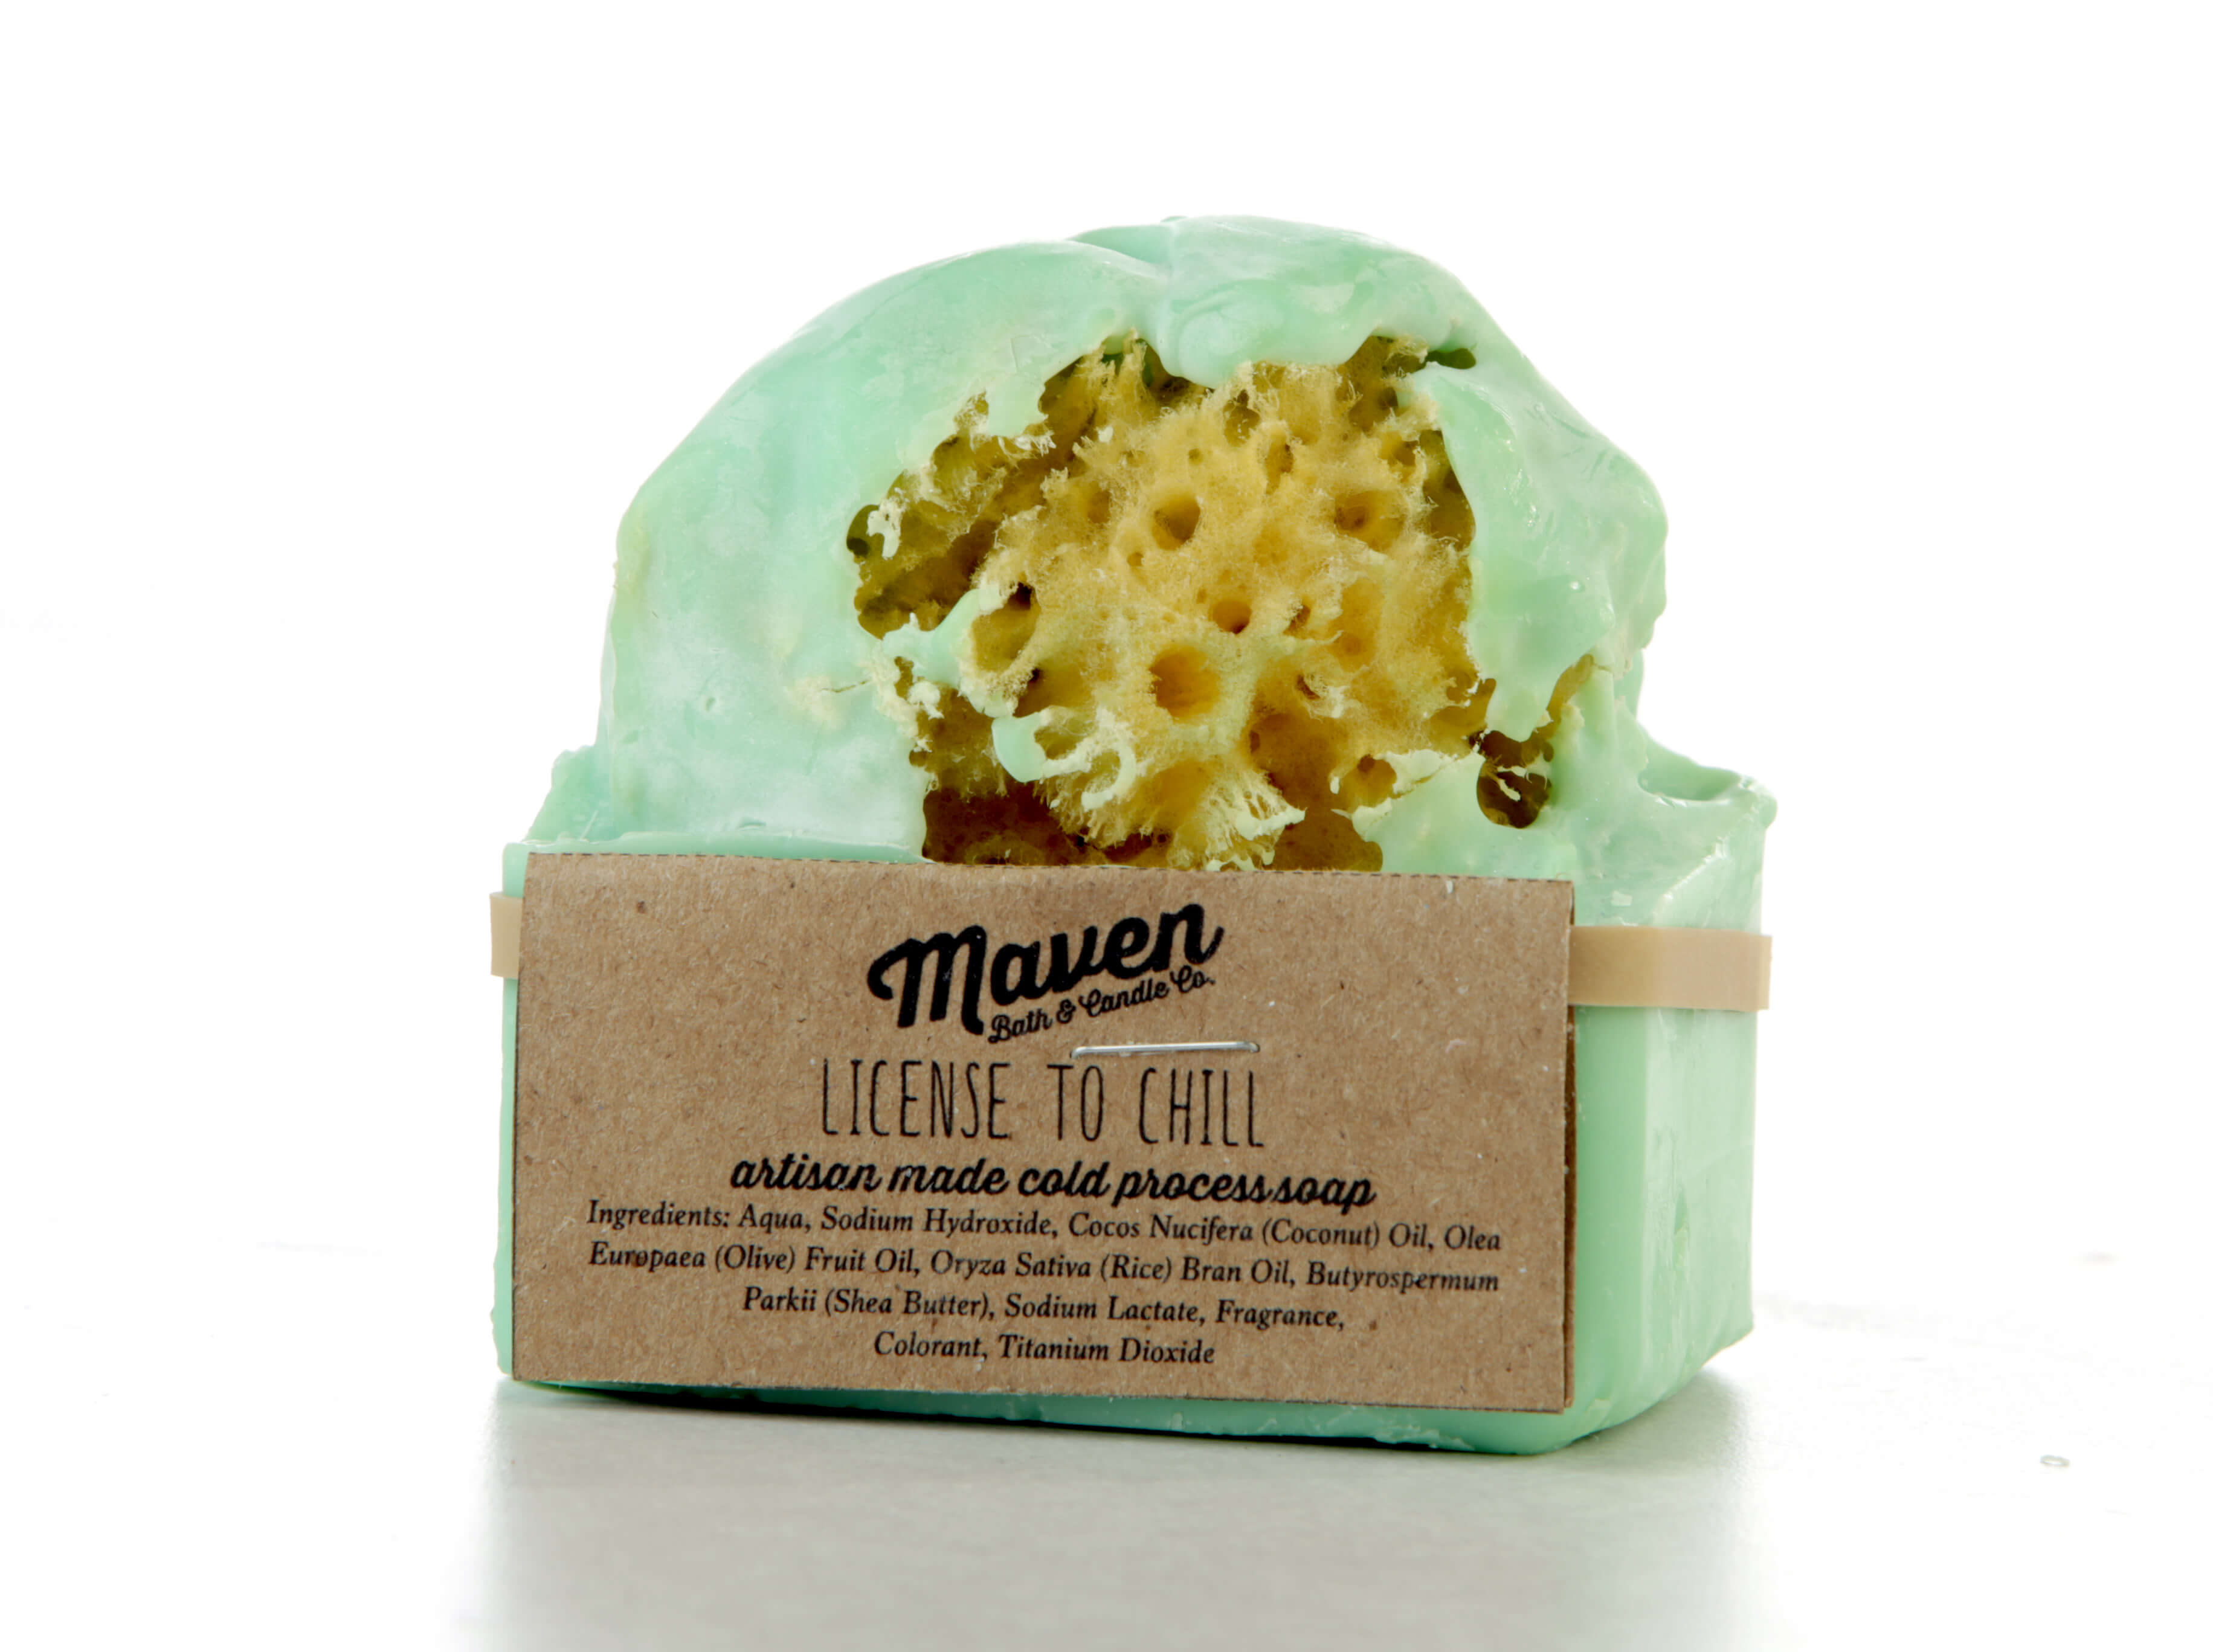 Maven License to Chill artisan-made cold process soap